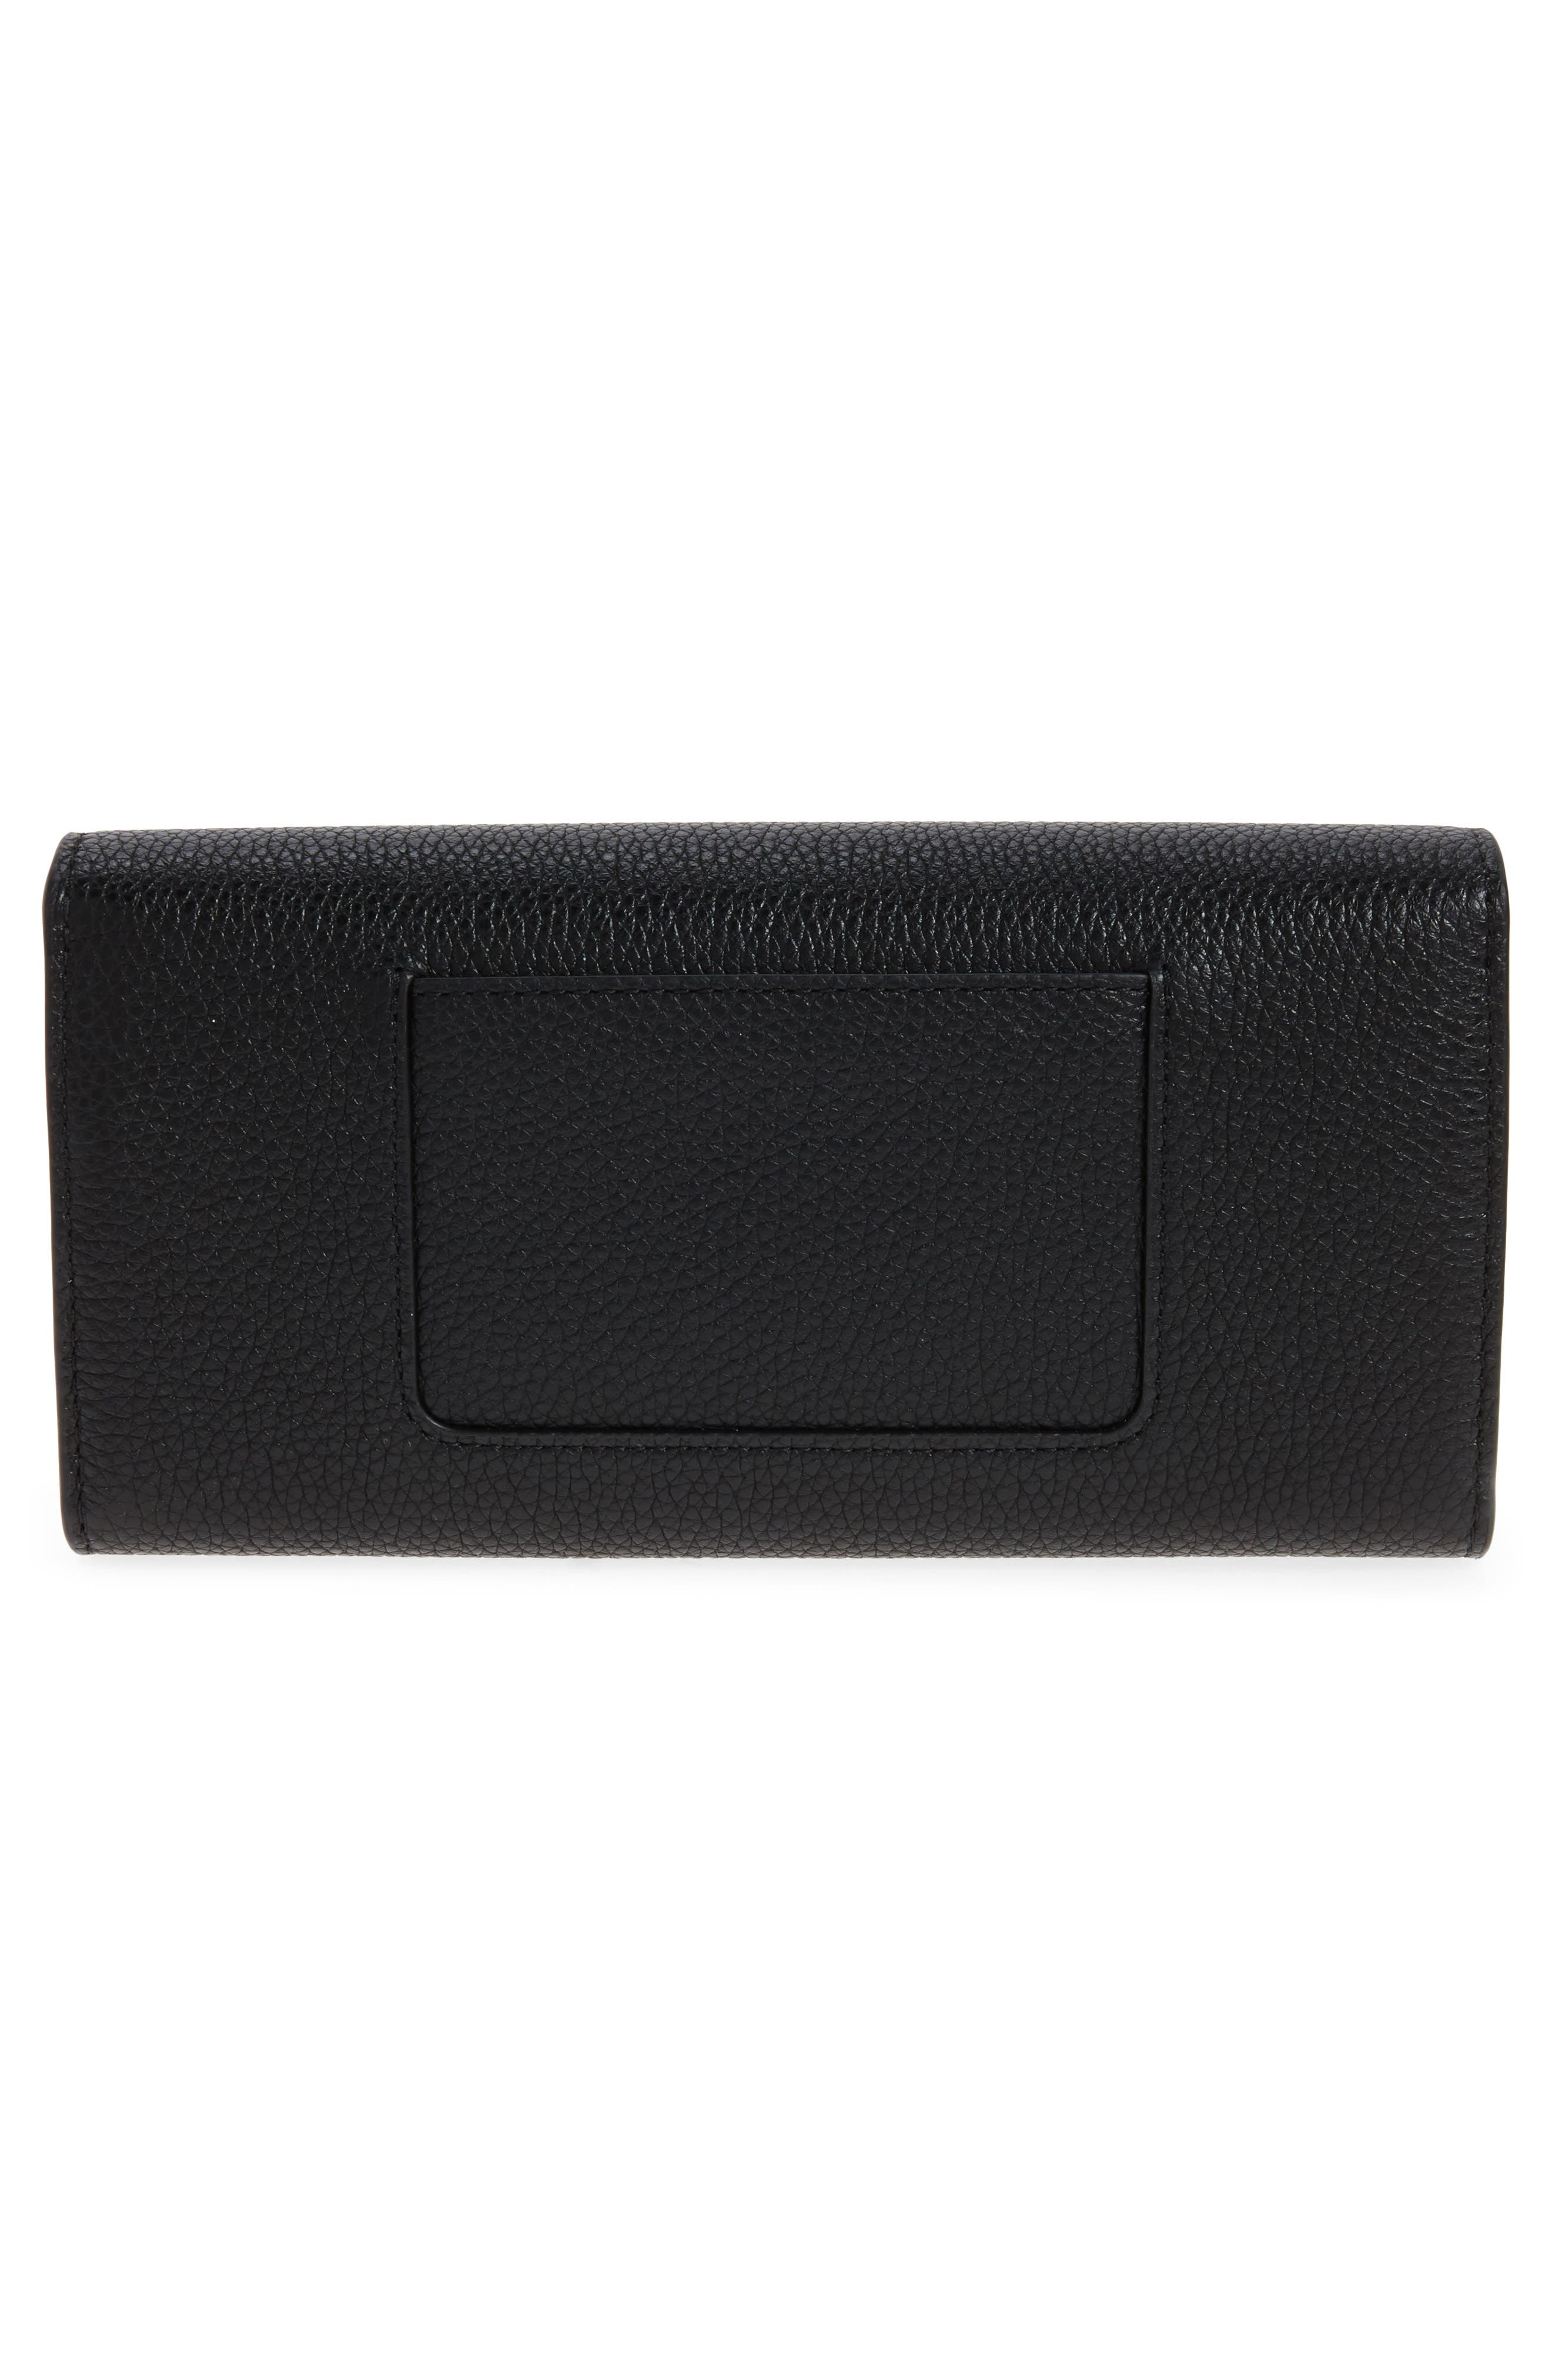 Darley Continental Leather Wallet,                             Alternate thumbnail 3, color,                             BLACK